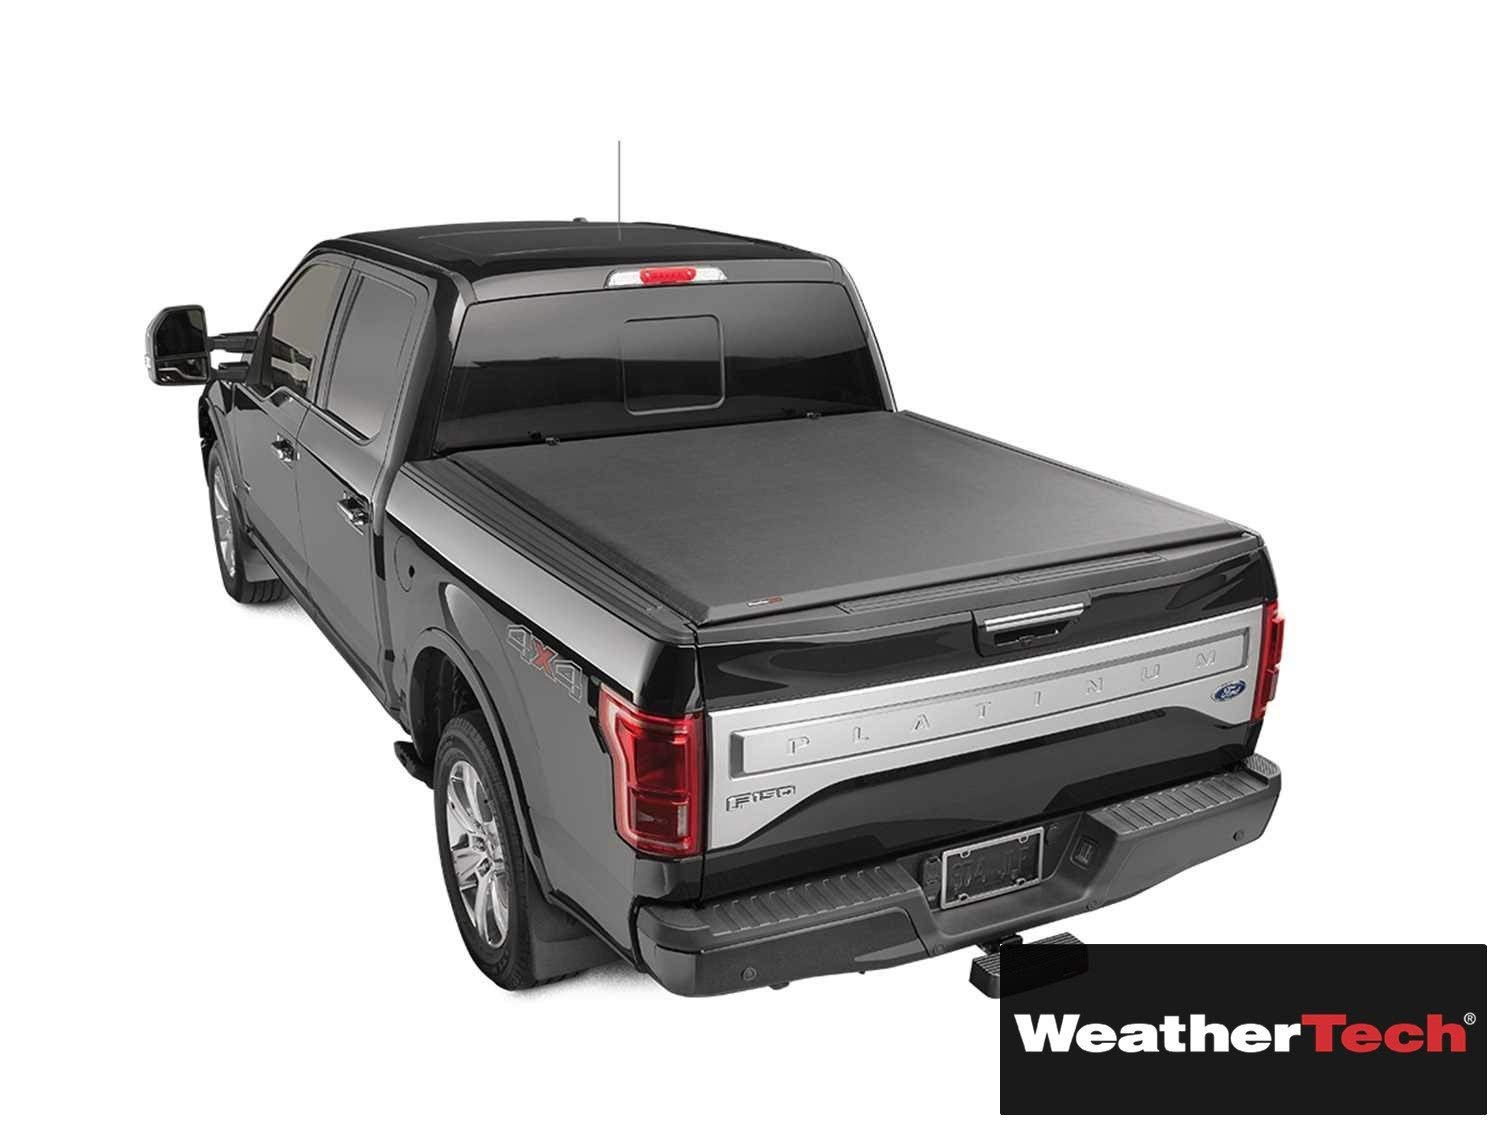 Roll Up Truck Bed Cover - Fits Dodge D250 Pickup Standard Side Bed - 1982 1983 1984 1985 1986 1987 1988 1989 1990 1991 1992 1993 | 82 83 84 85 86 87 88 89 90 91 92 93 (WEA-WPB-154)